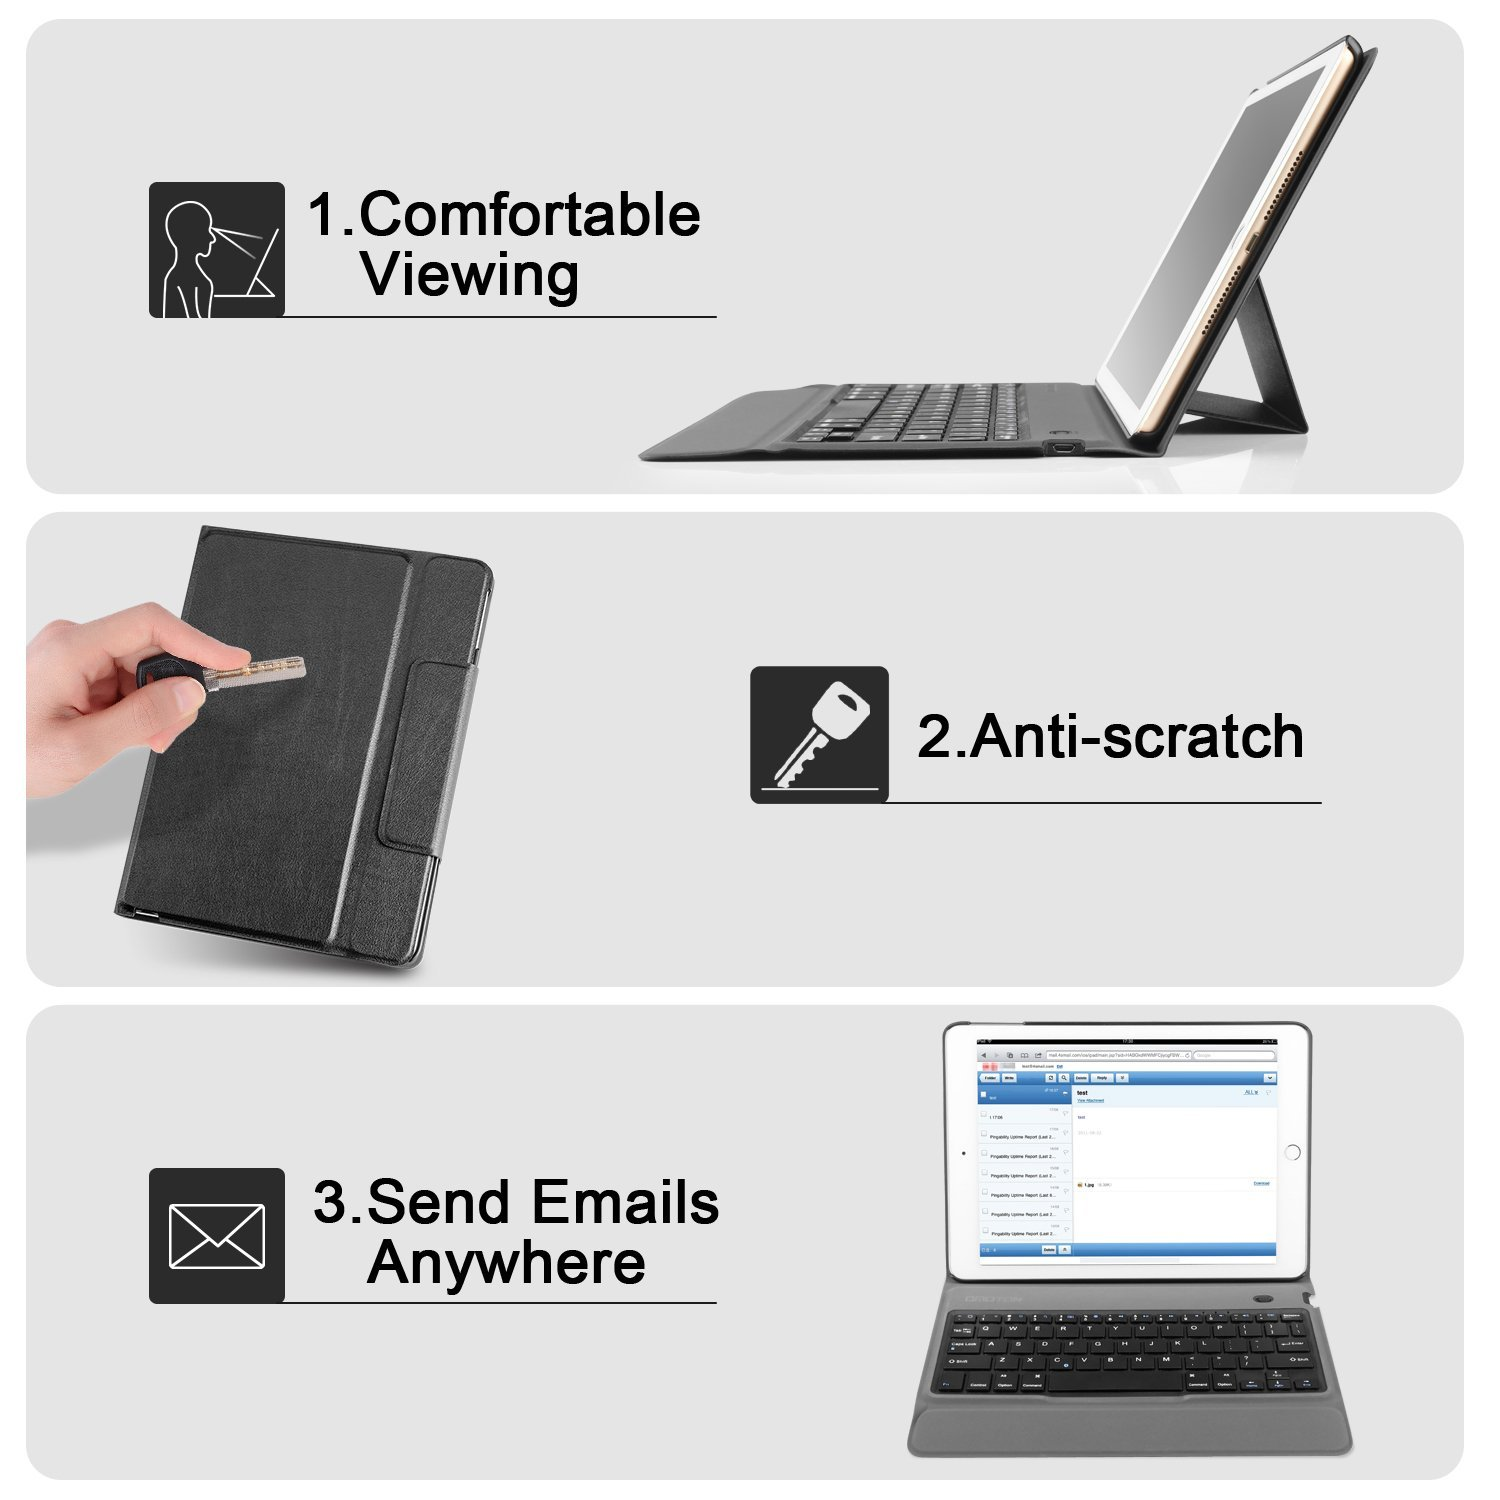 OMOTON New iPad 9.7 2018 & iPad 9.7 2017 Keyboard Case, [Upgraded Version] Ultra-Thin Bluetooth Keyboard Portfolio Case with Stand, PU Leather, and Auto Sleep/Wake for Apple iPad 9.7 2017 2018 Tablet by OMOTON (Image #8)